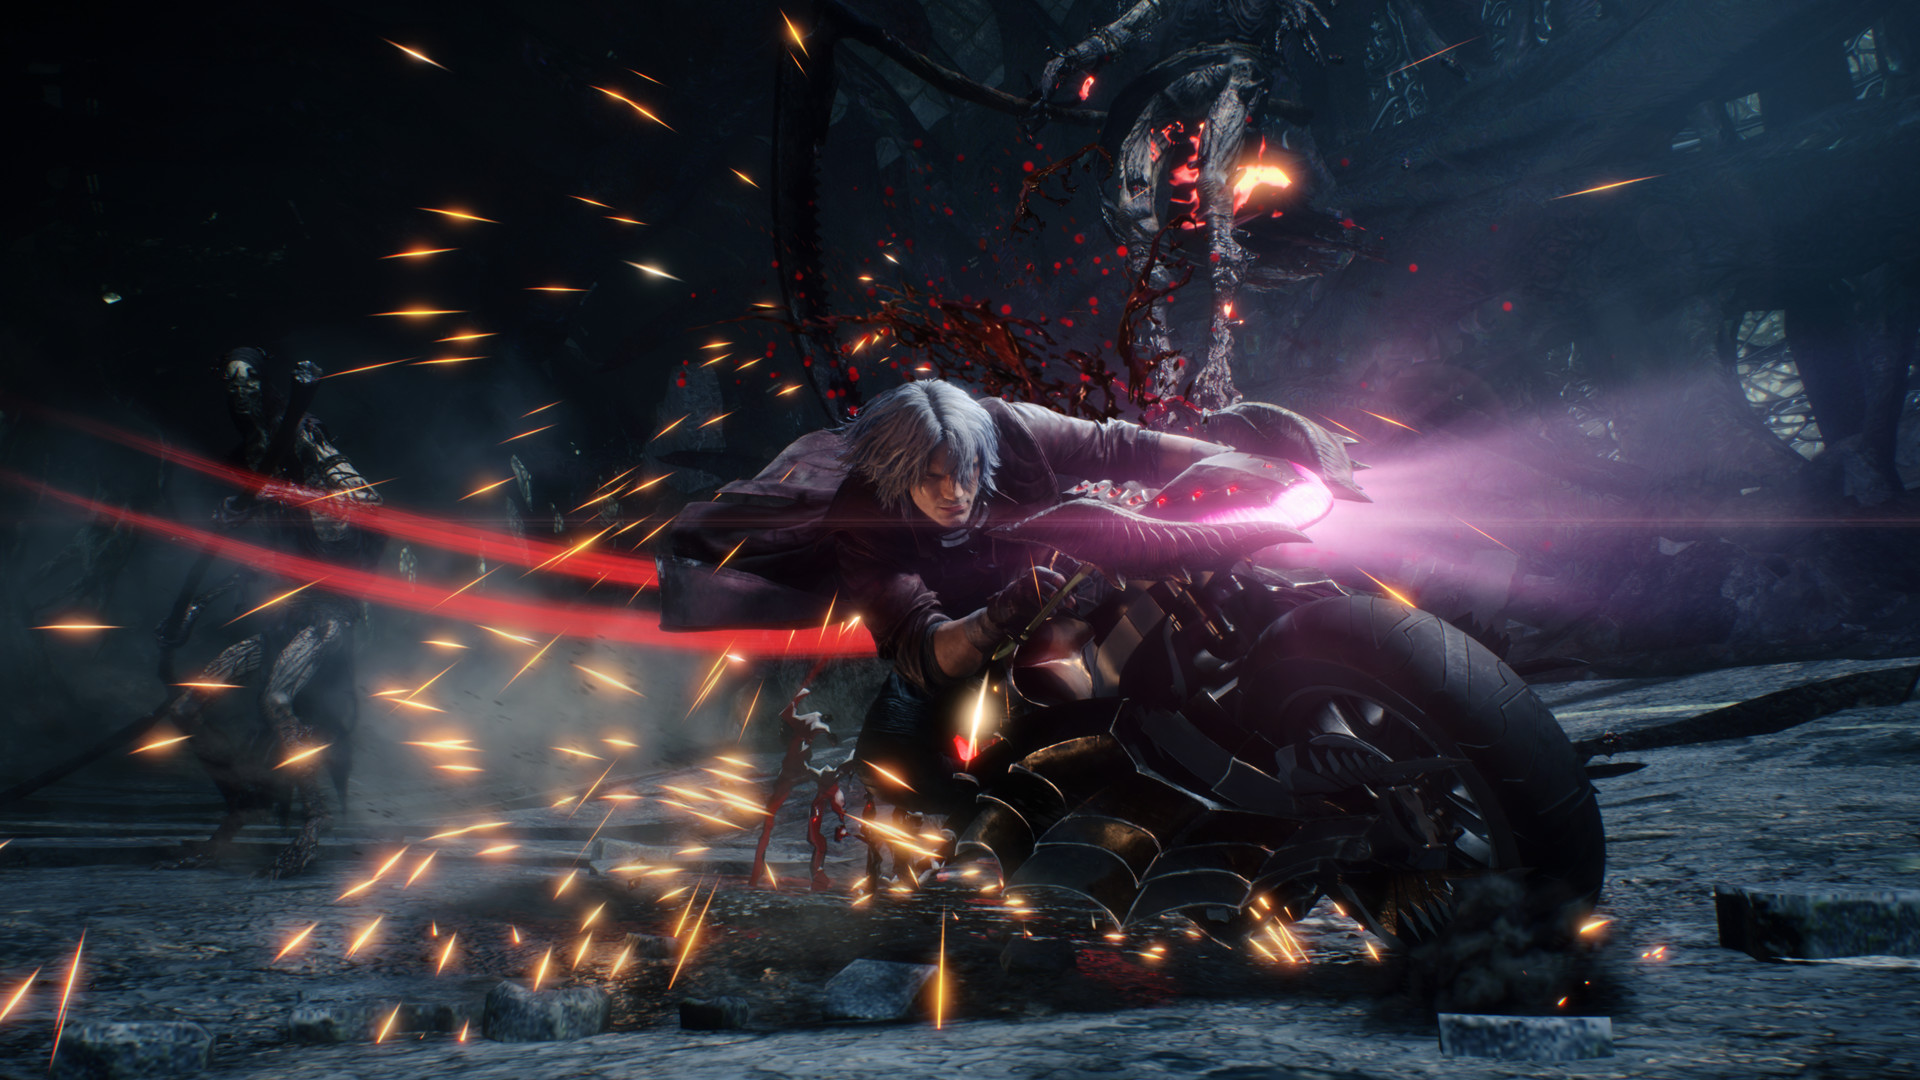 download devil may cry 5 pc utorrent